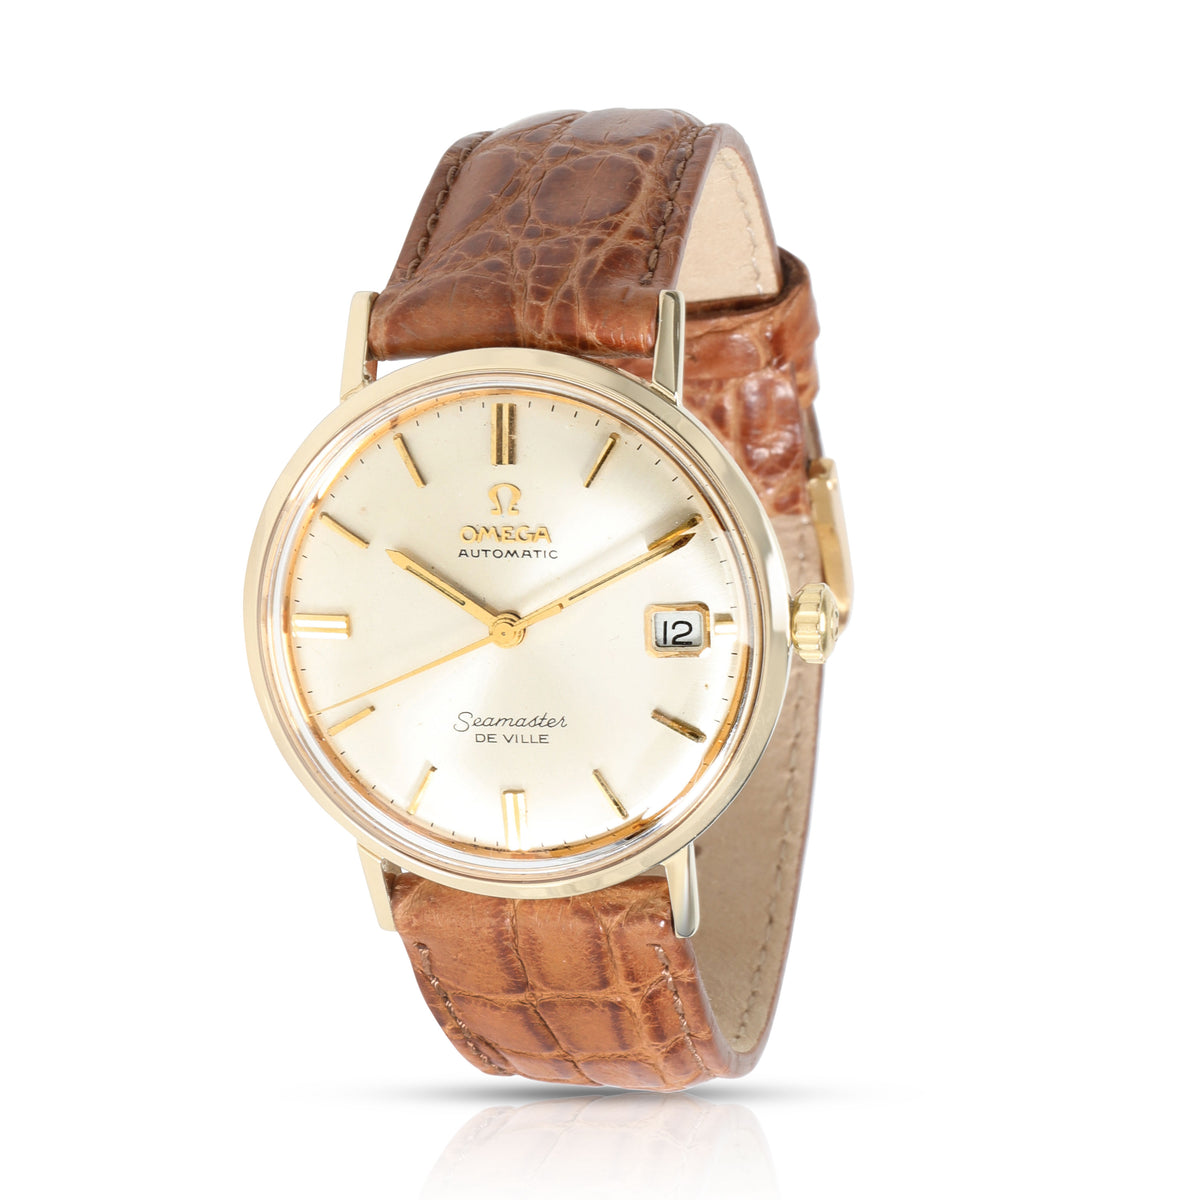 Omega Seamaster DeVille 166.002 Men's Watch in 14kt Yellow Gold